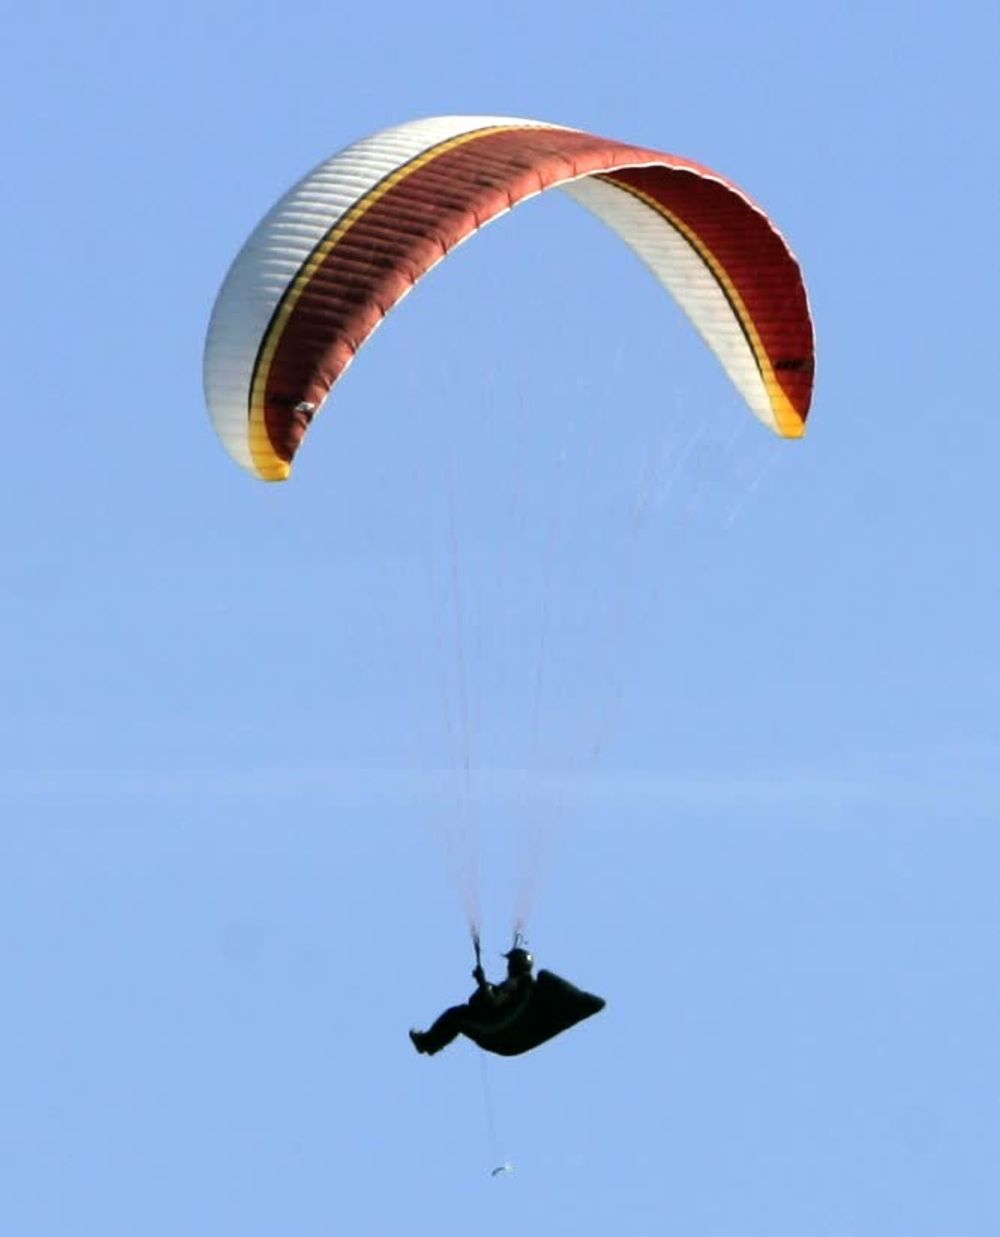 title: Paragliding Activities in Santa Barbara in California